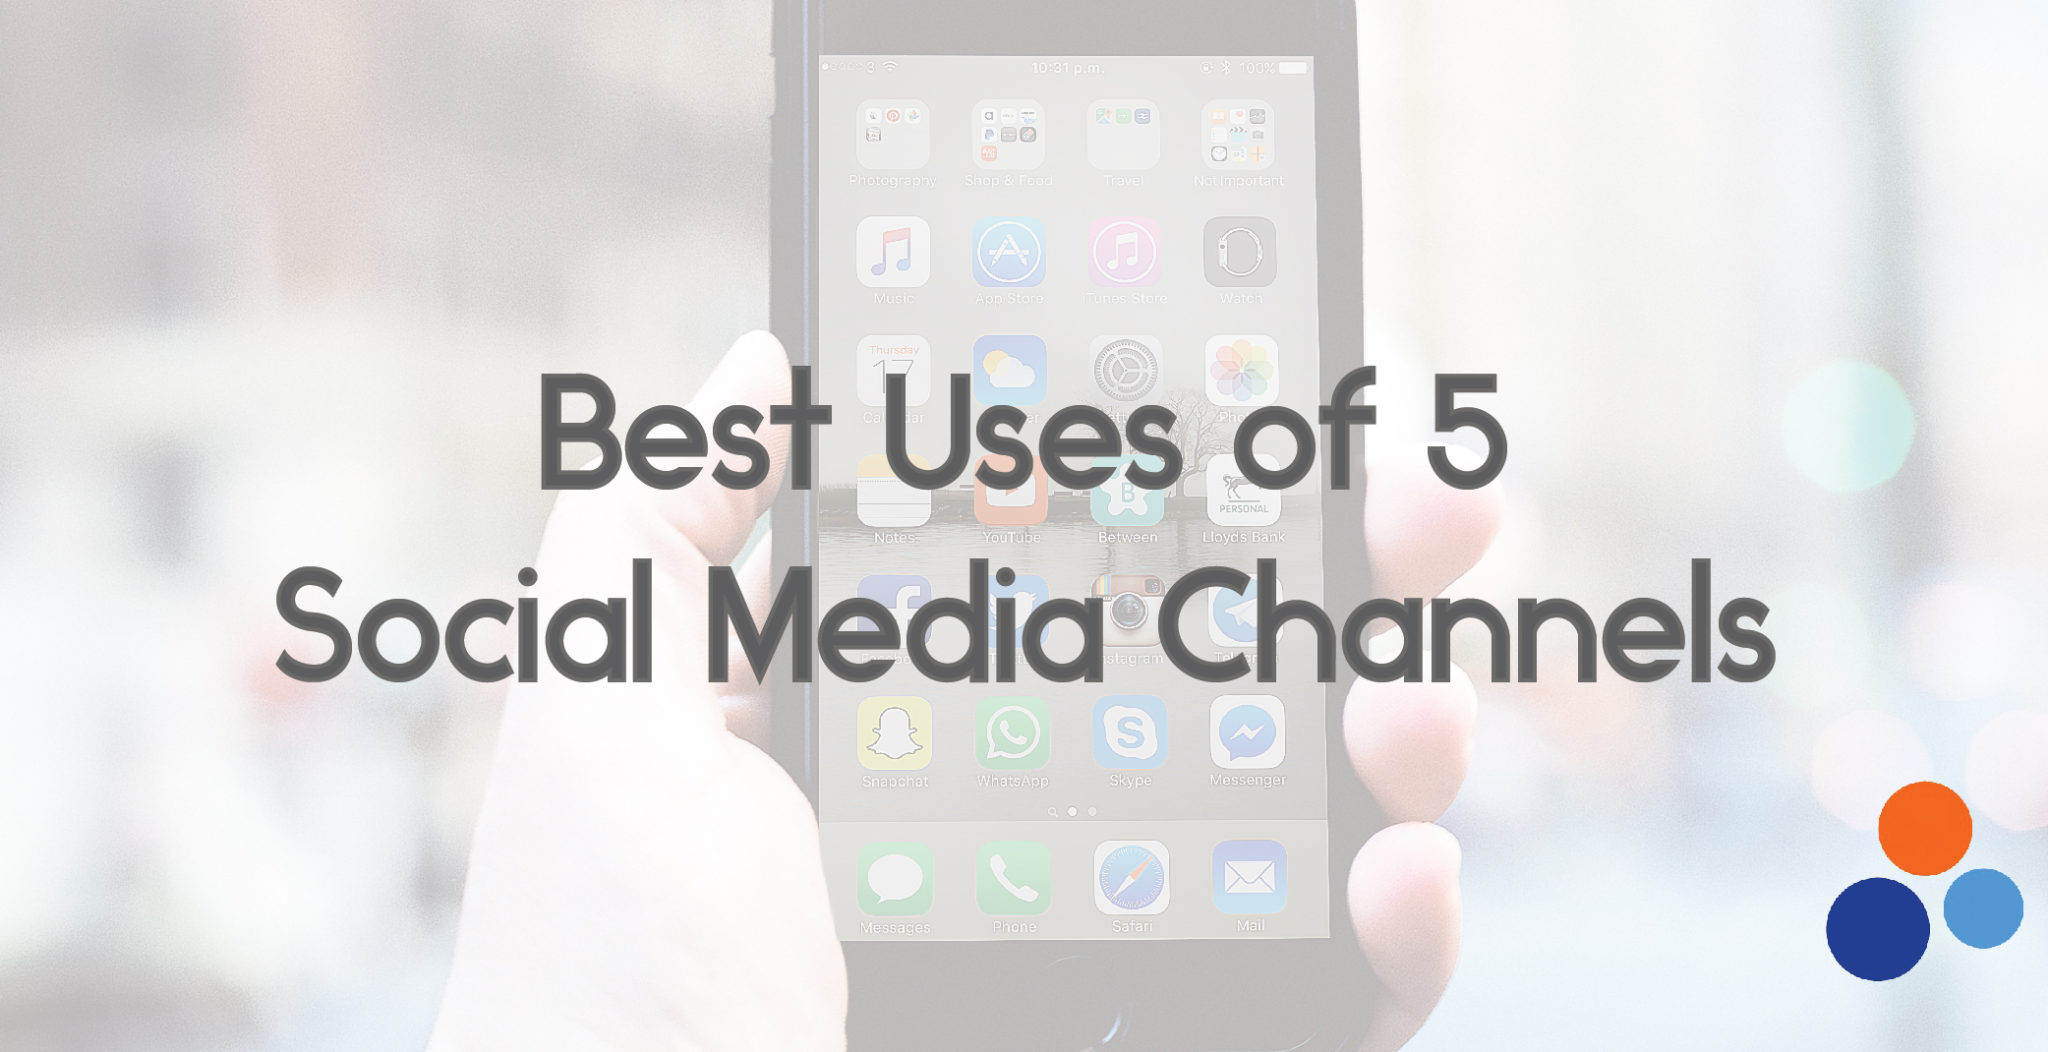 Best Uses of 5 Social Media Channels